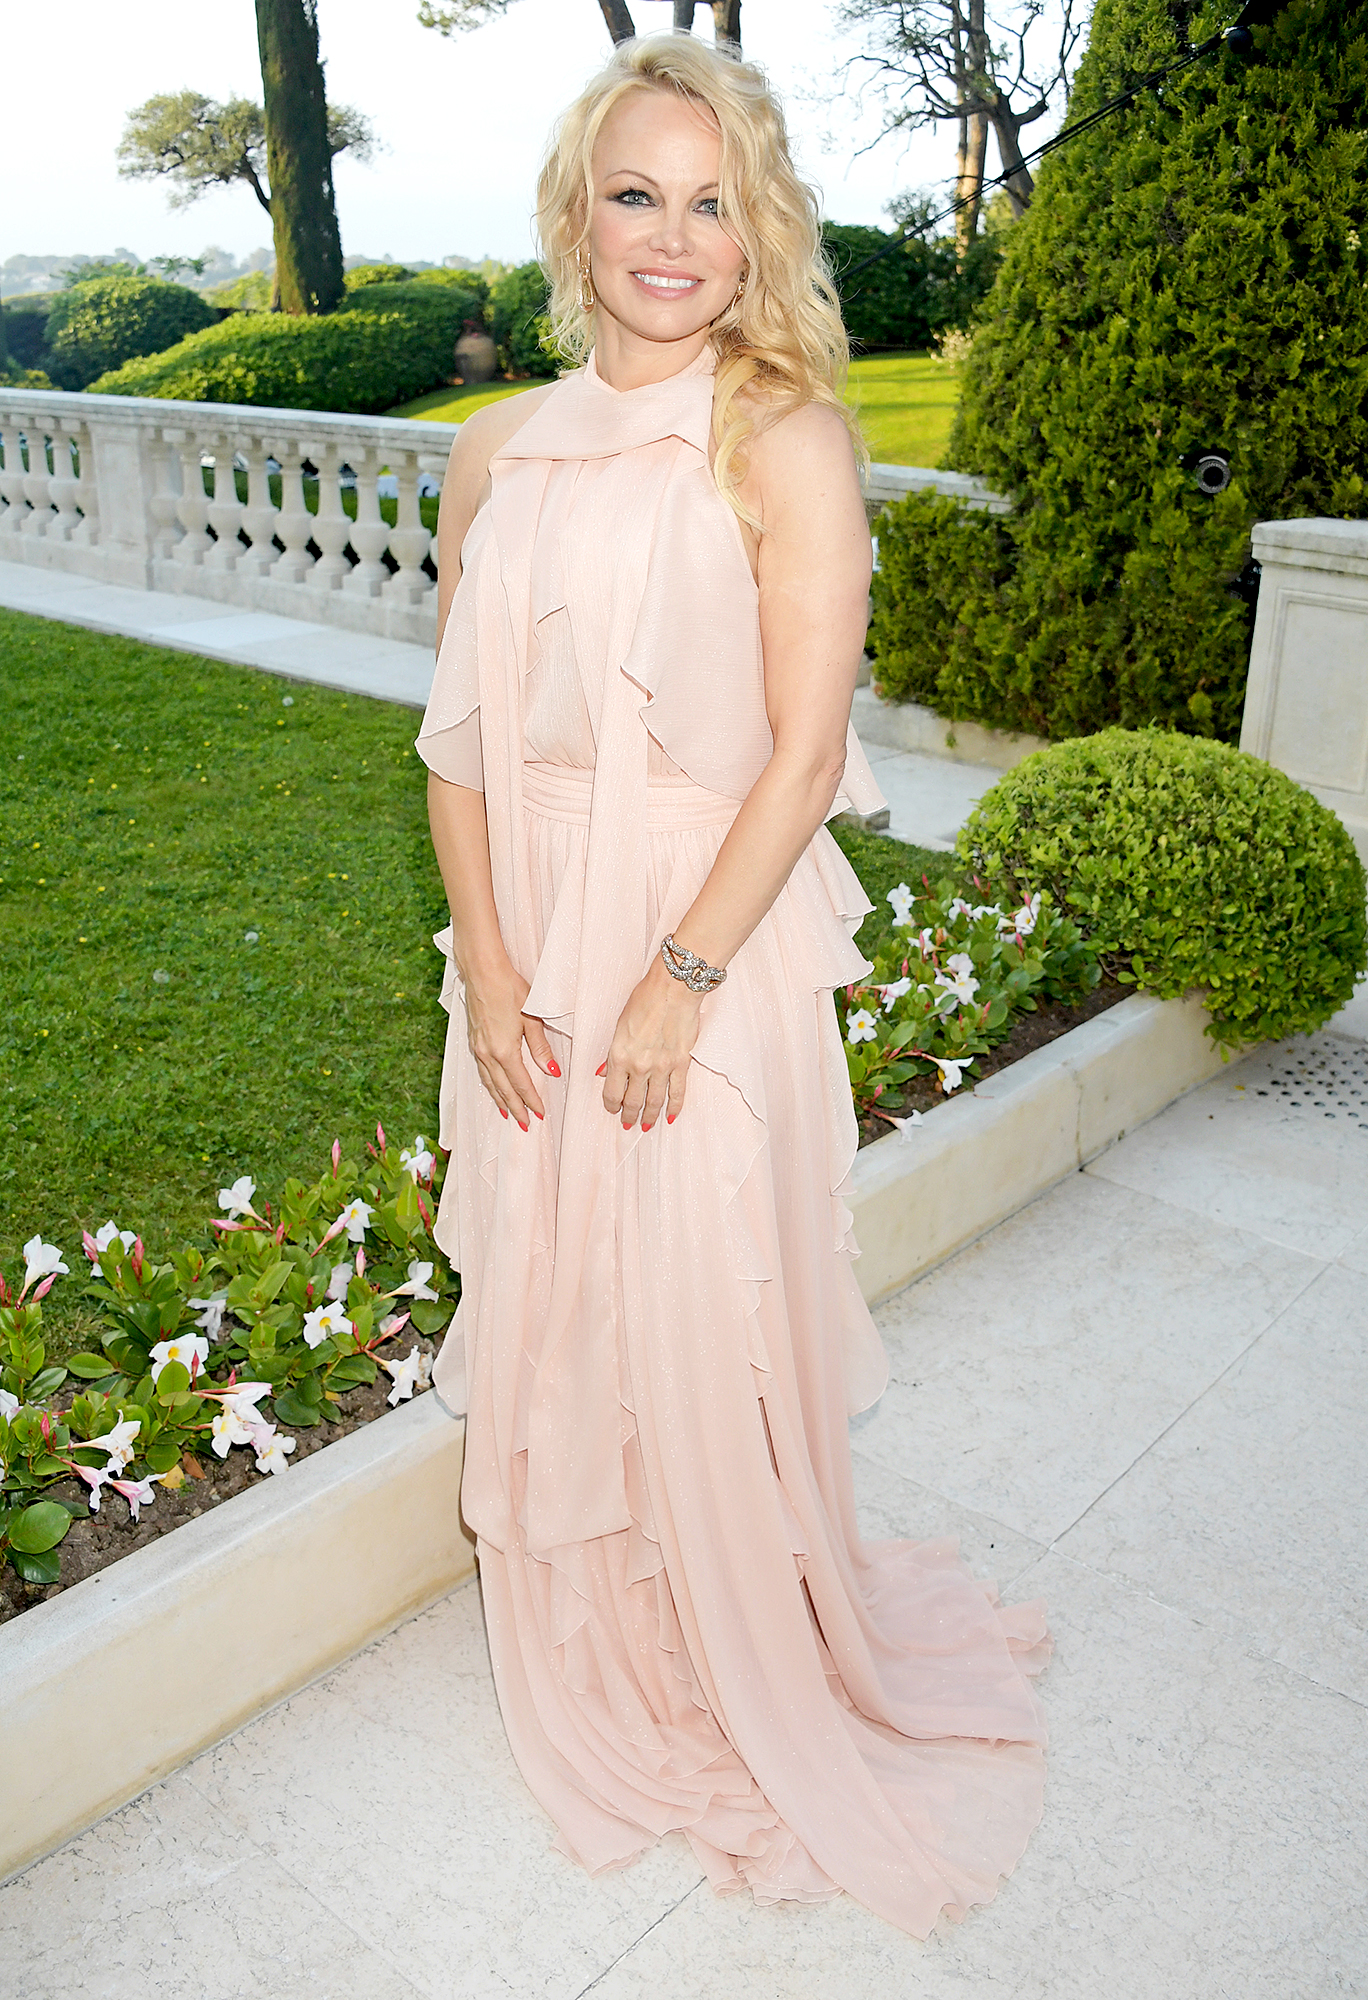 Pamela-Anderson - Beautiful in blush, the blonde beauty rocked a Grecian-inspired tiered number at the amfAR Cannes Gala on Thursday, May 23.